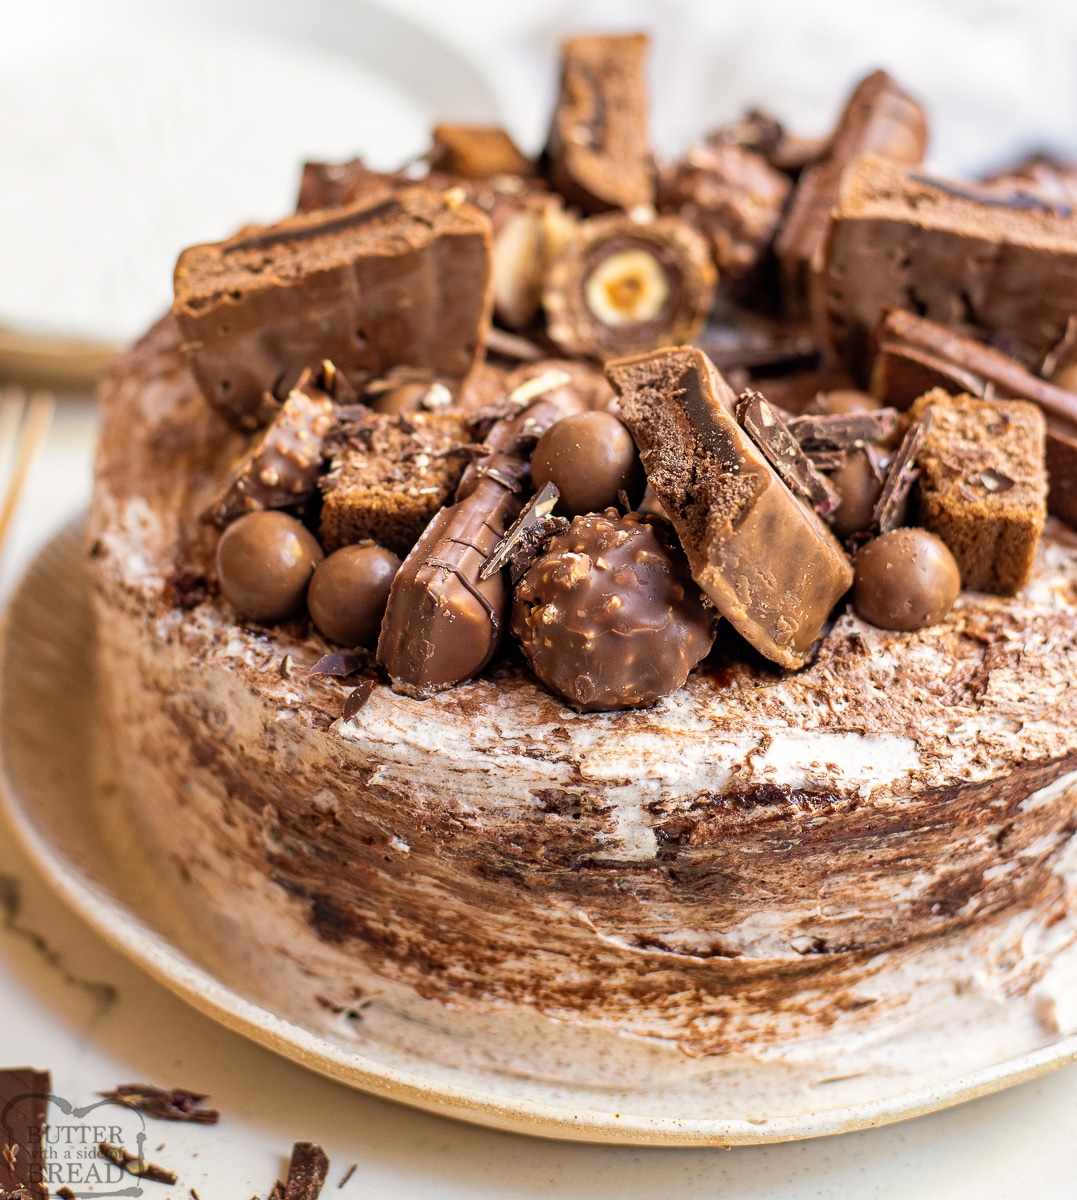 Chocolate Cake with Chocolate Mousse Frosting